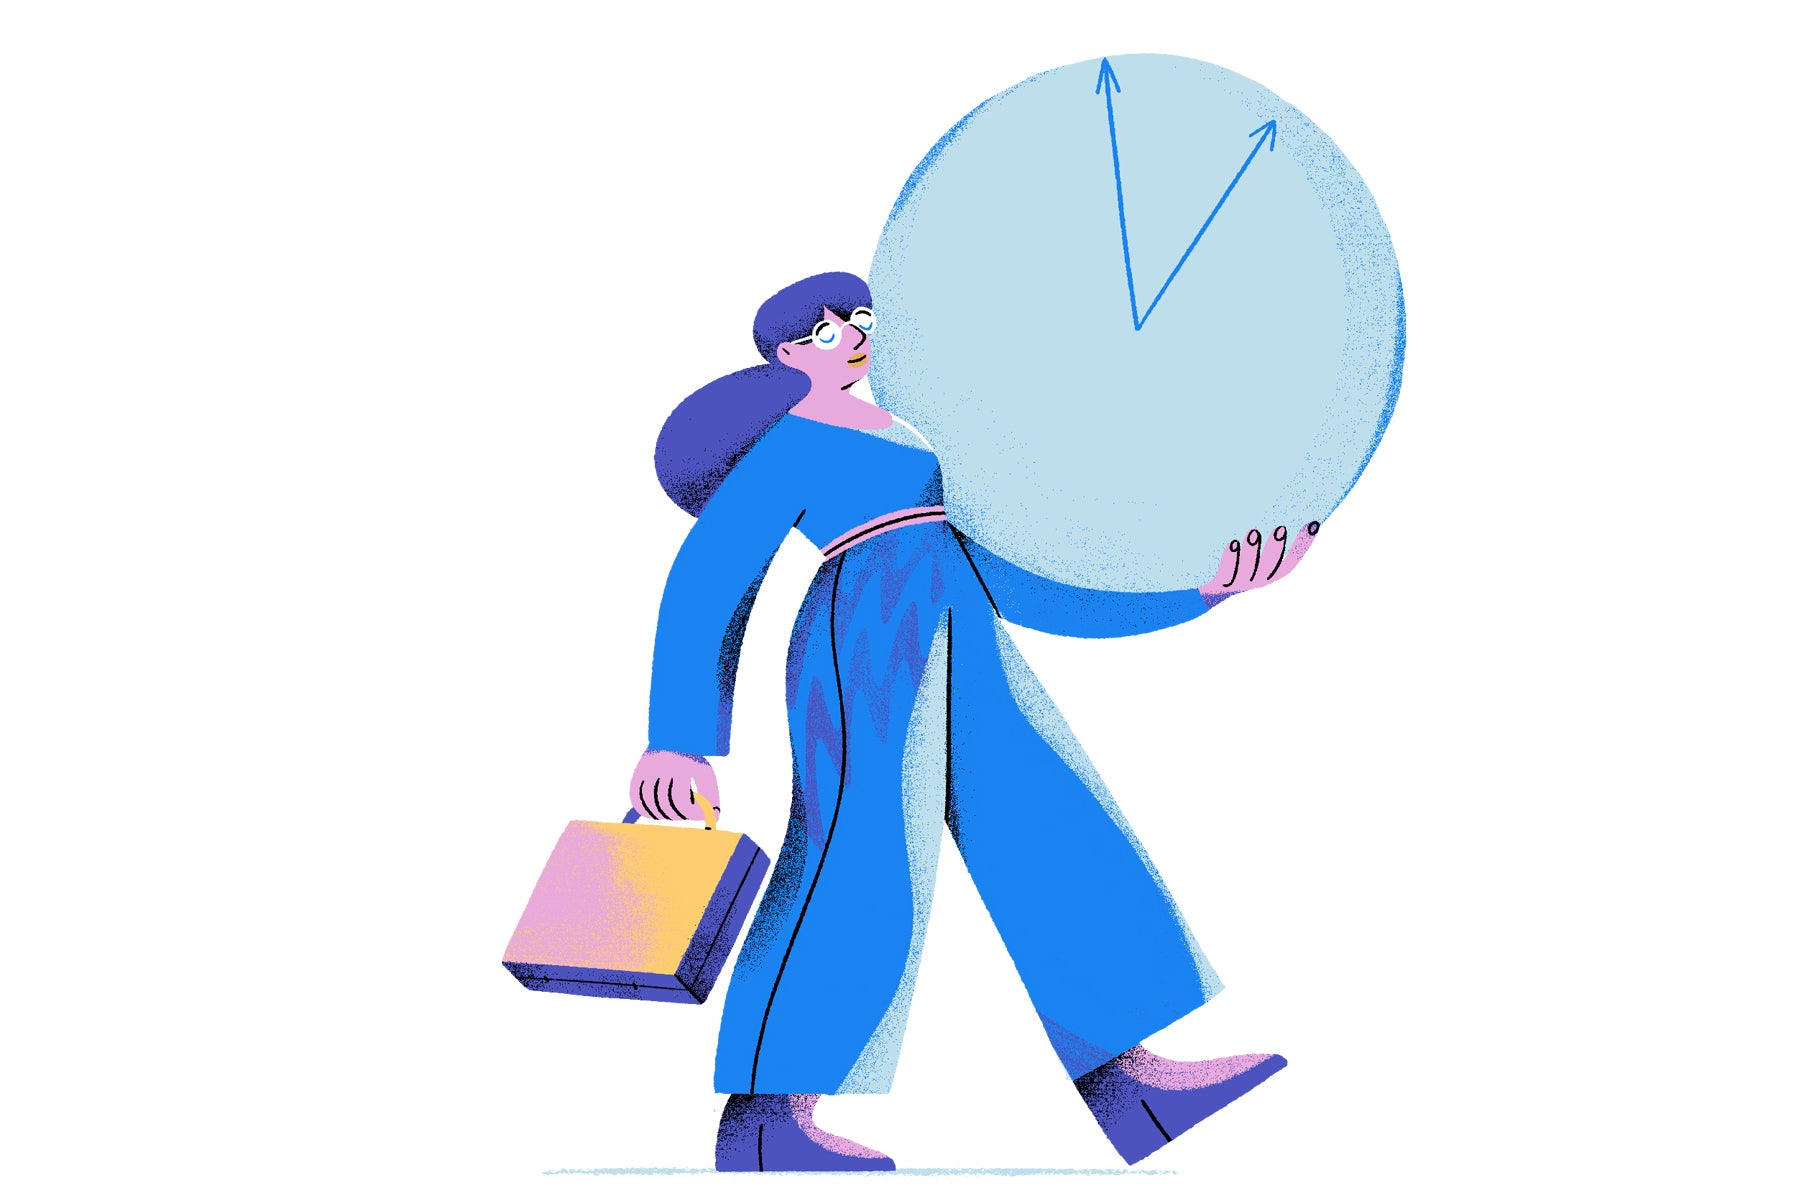 Illustration of a young woman carrying a clock and a briefcase to represent monetizing her time.